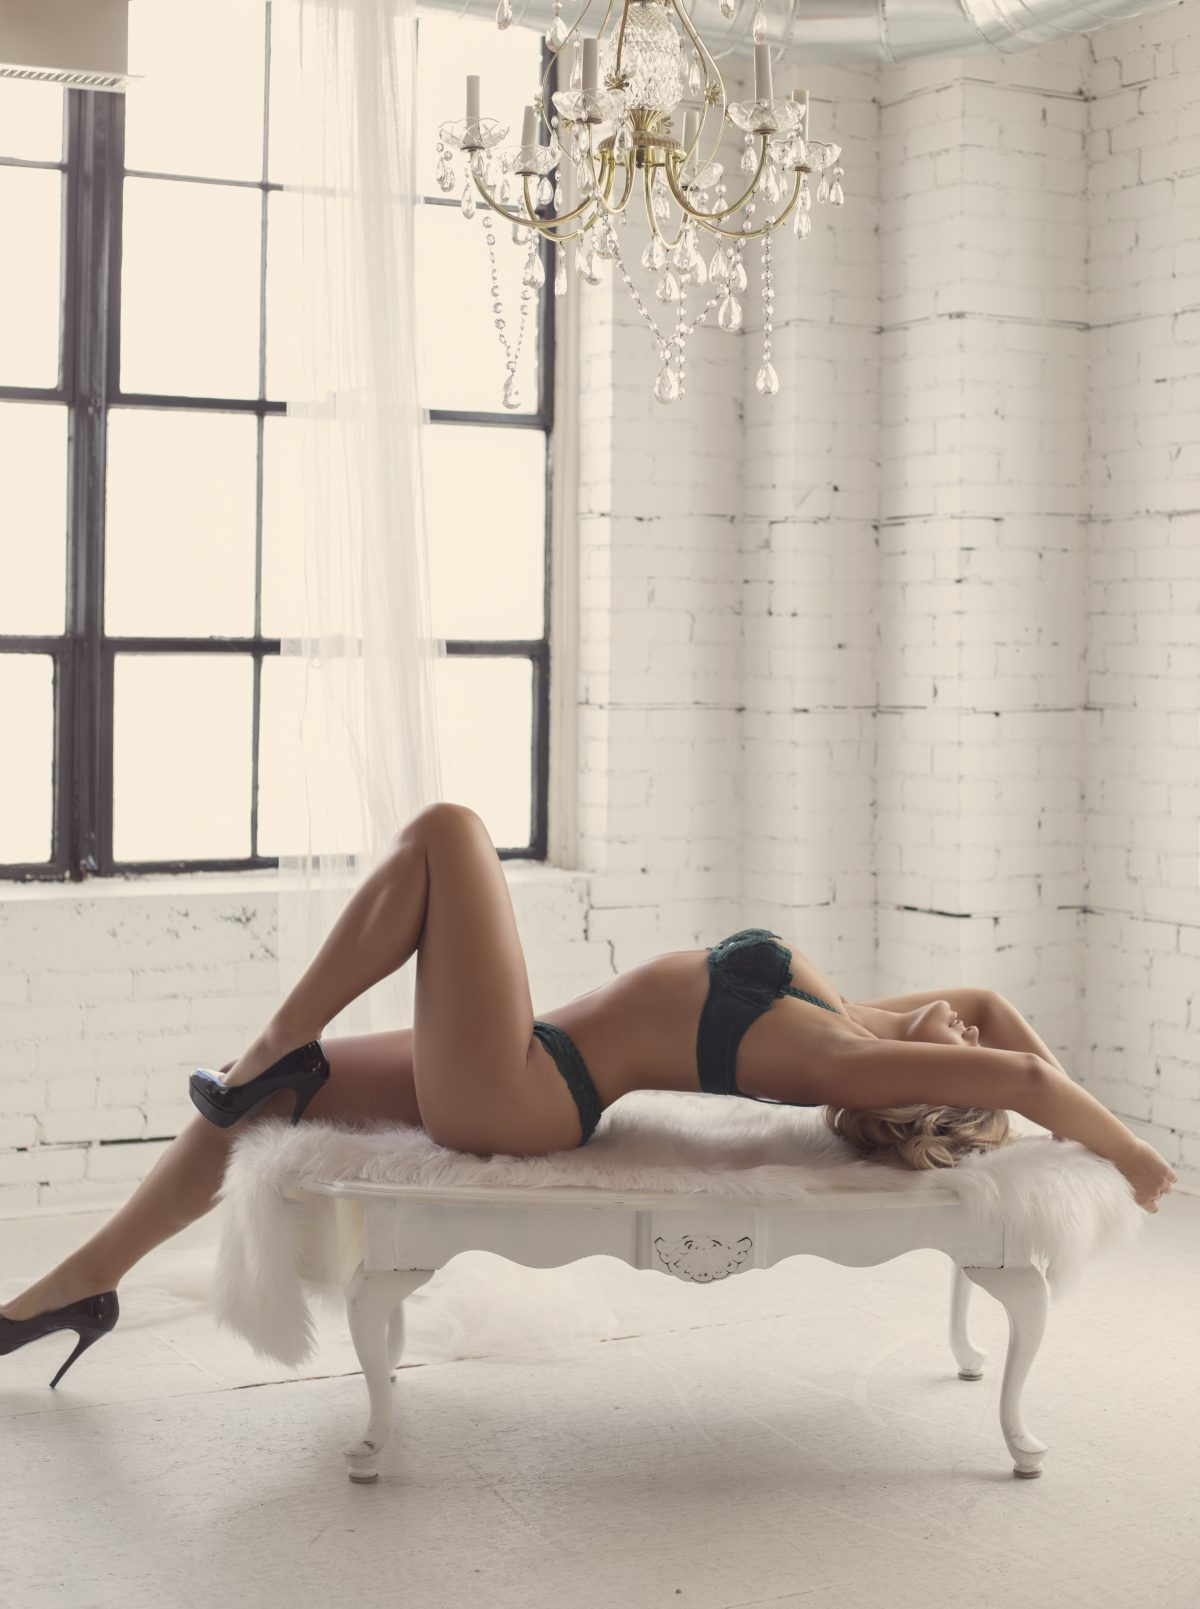 Toronto escorts companion upscale Tori Interests Duo Non-smoking Age Mature Figure Tall Breasts Natural Hair Blonde Ethnicity European Tattoos Small Arrival Returning